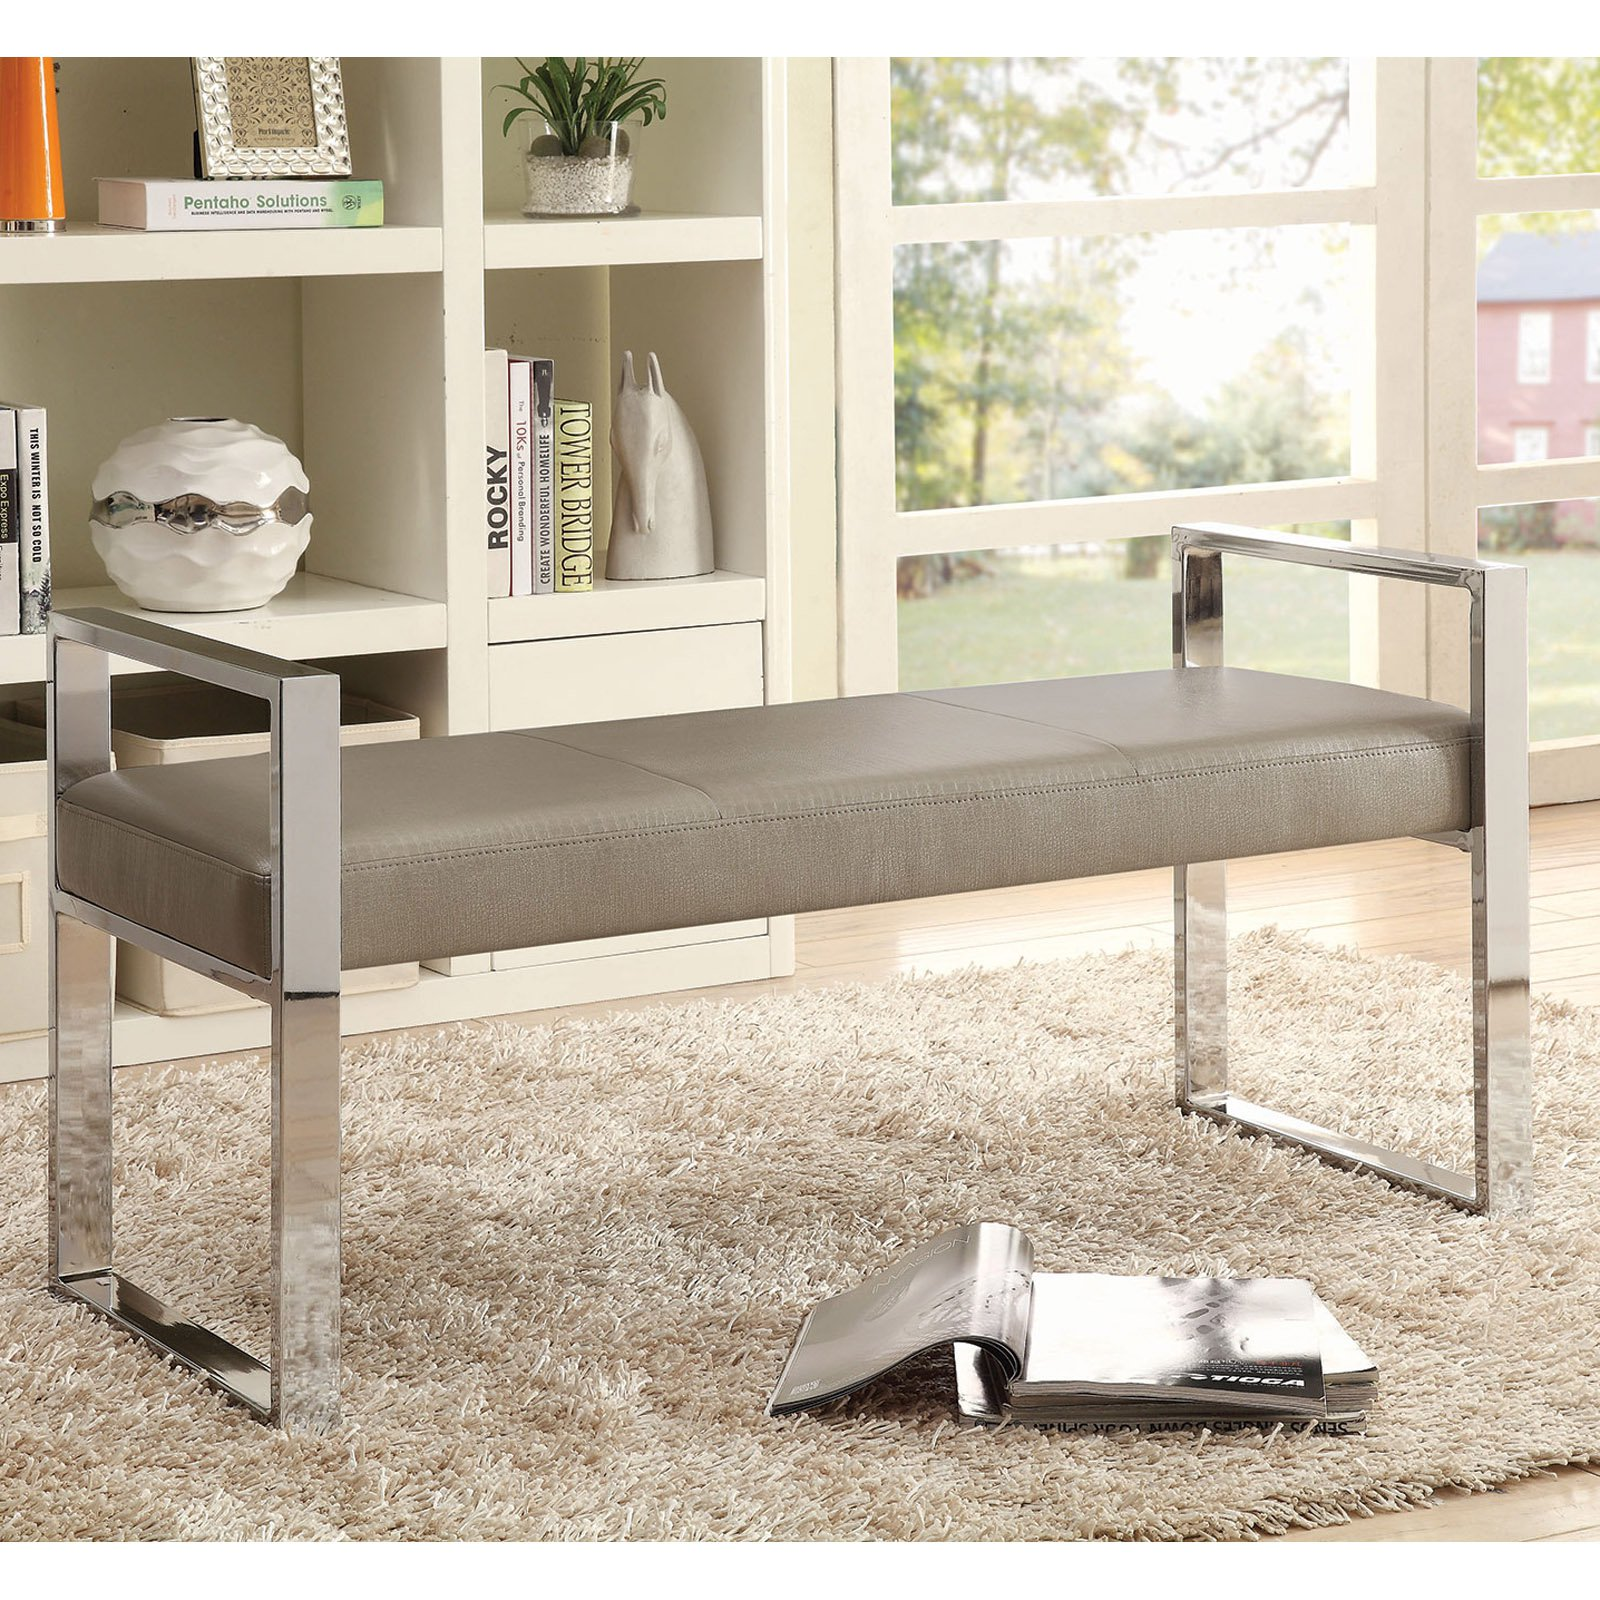 Coaster Company Bench, Champagne Leatherette with Chrome Legs